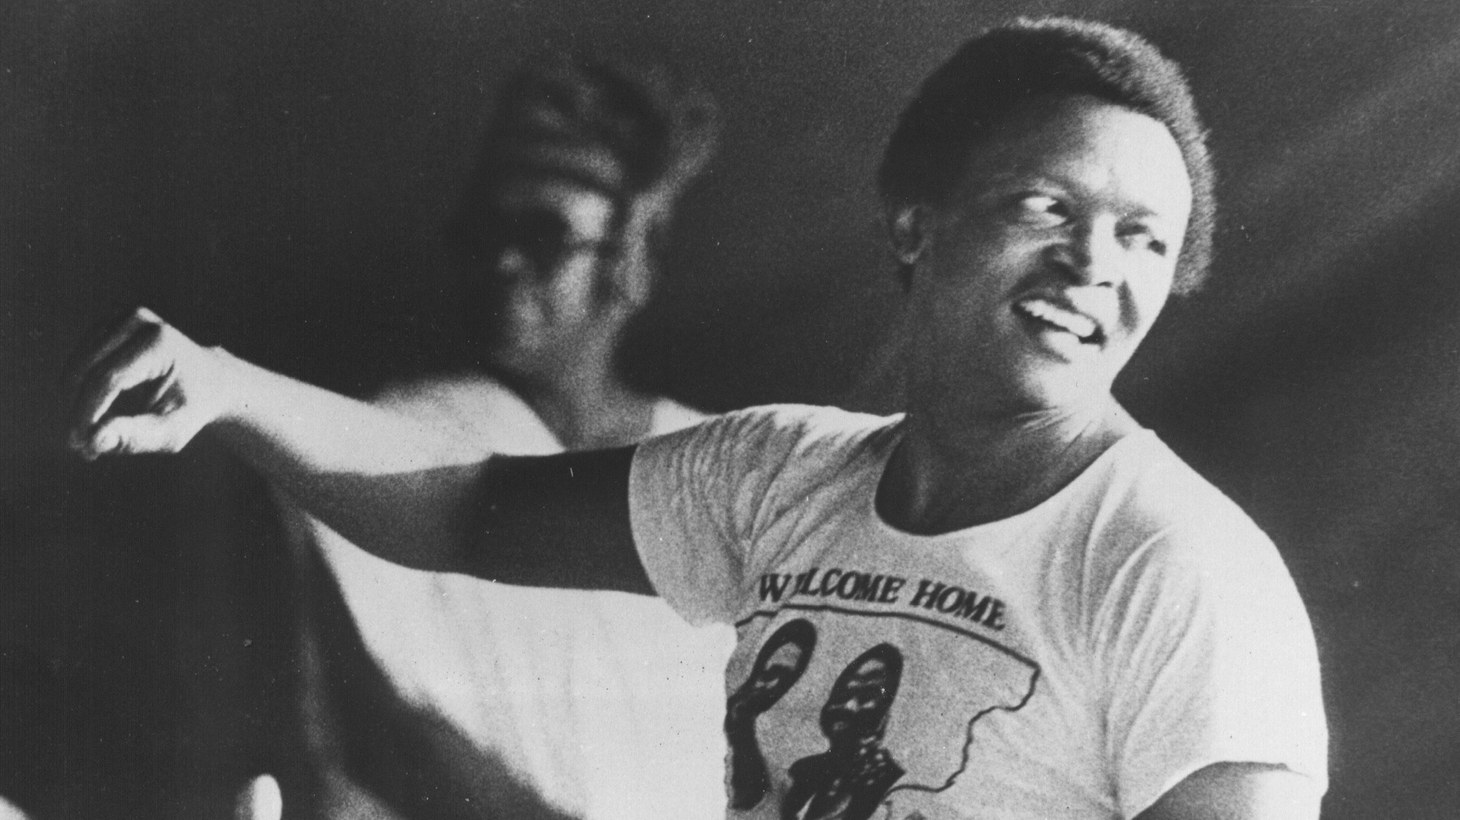 Hugh Masekela is mostly known as a South African trumpeter but his clarion call included activism and in 1980 Masekela lead a stadium-filled concert in Lesotho that challenged and defied the country's apartheid regime, ultimately banning him.